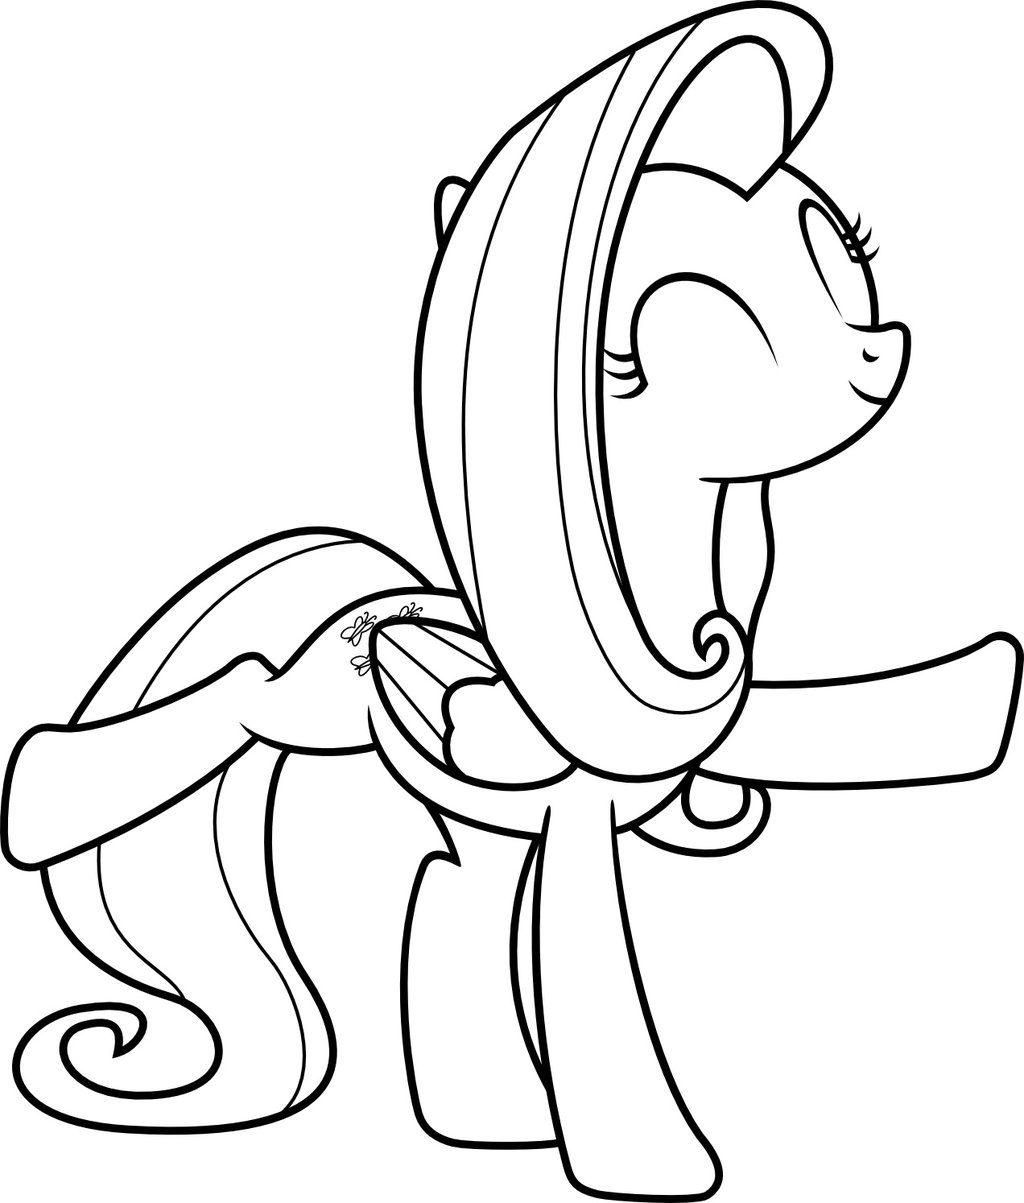 1024x1203 Best Of My Little Pony Coloring Pages Princess Luna Filly Design